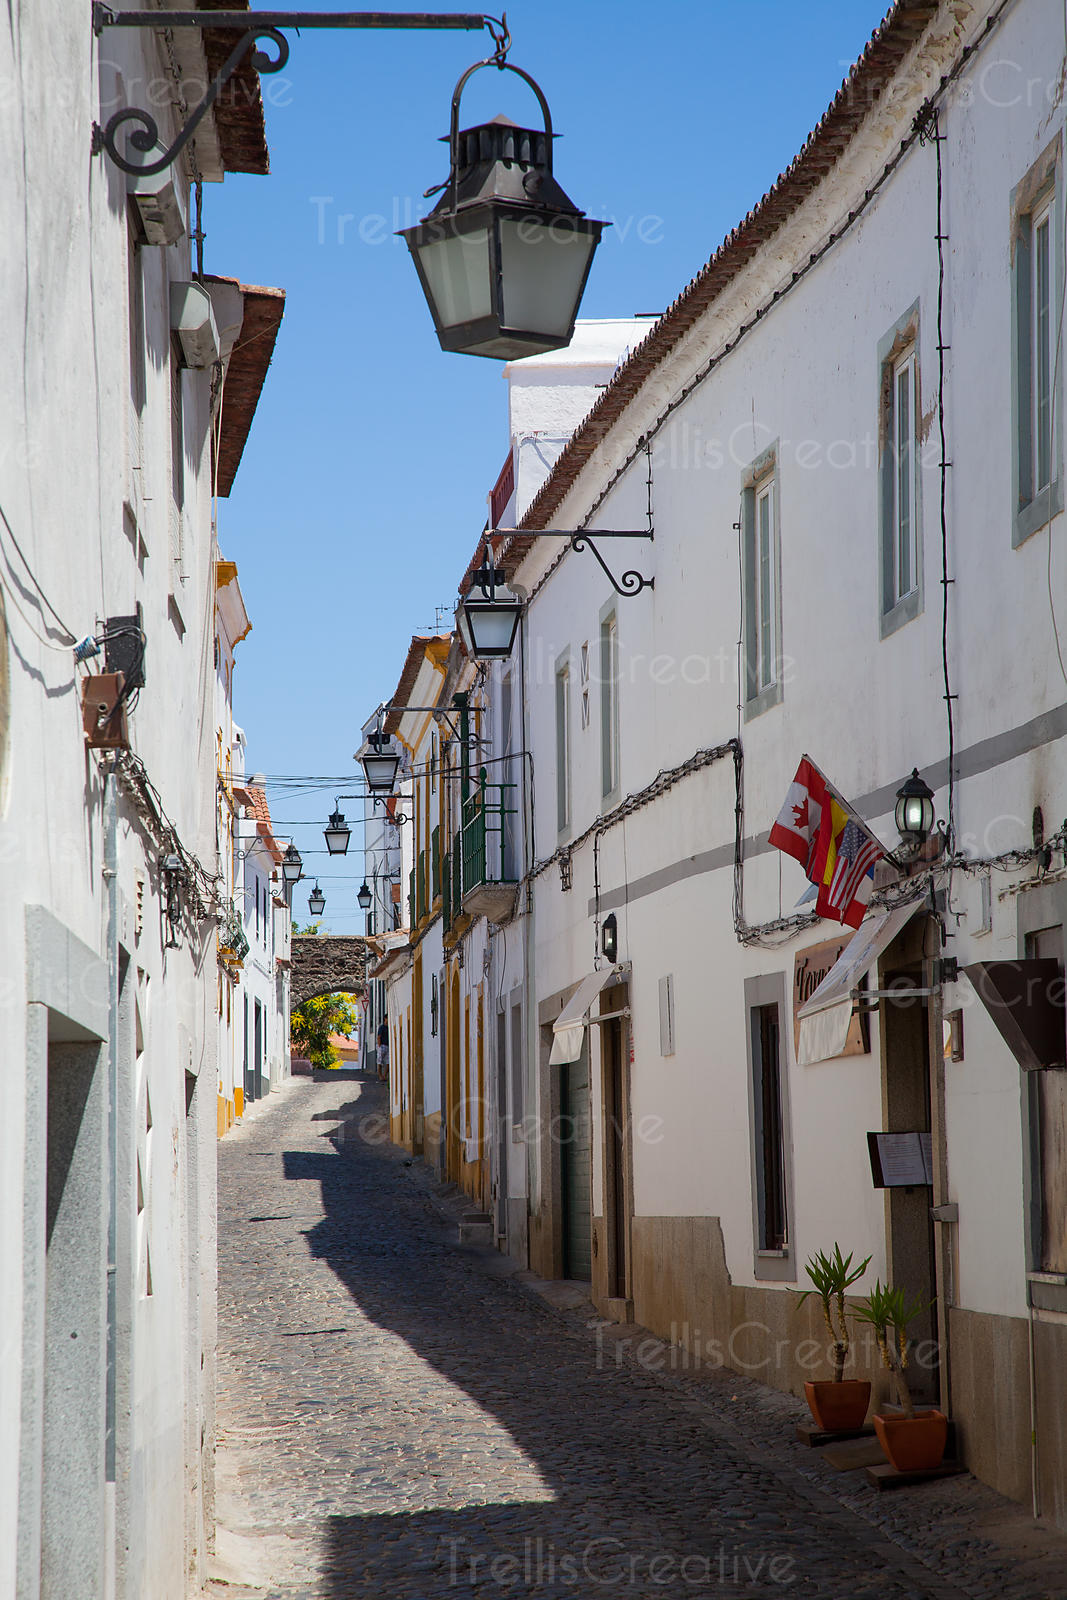 Narrow street in Evora, Portugal lined with old lanterns